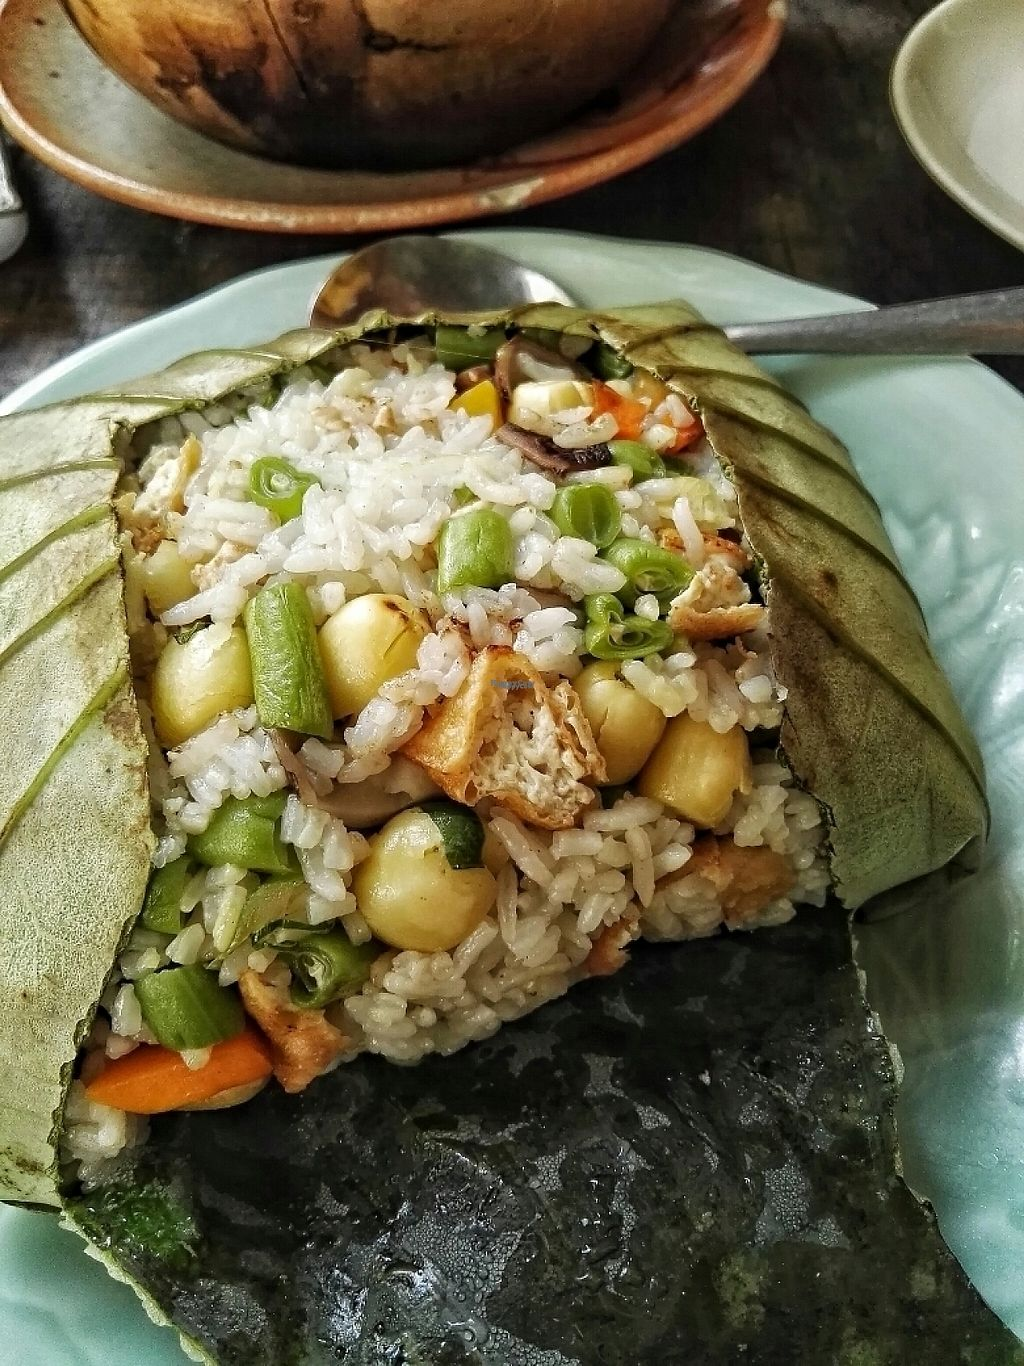 "Photo of Tib Restaurant - Phan Ke Binh  by <a href=""/members/profile/KienHoo.Yap"">KienHoo.Yap</a> <br/>Fried rice in lotus leaf <br/> December 25, 2016  - <a href='/contact/abuse/image/54144/204591'>Report</a>"